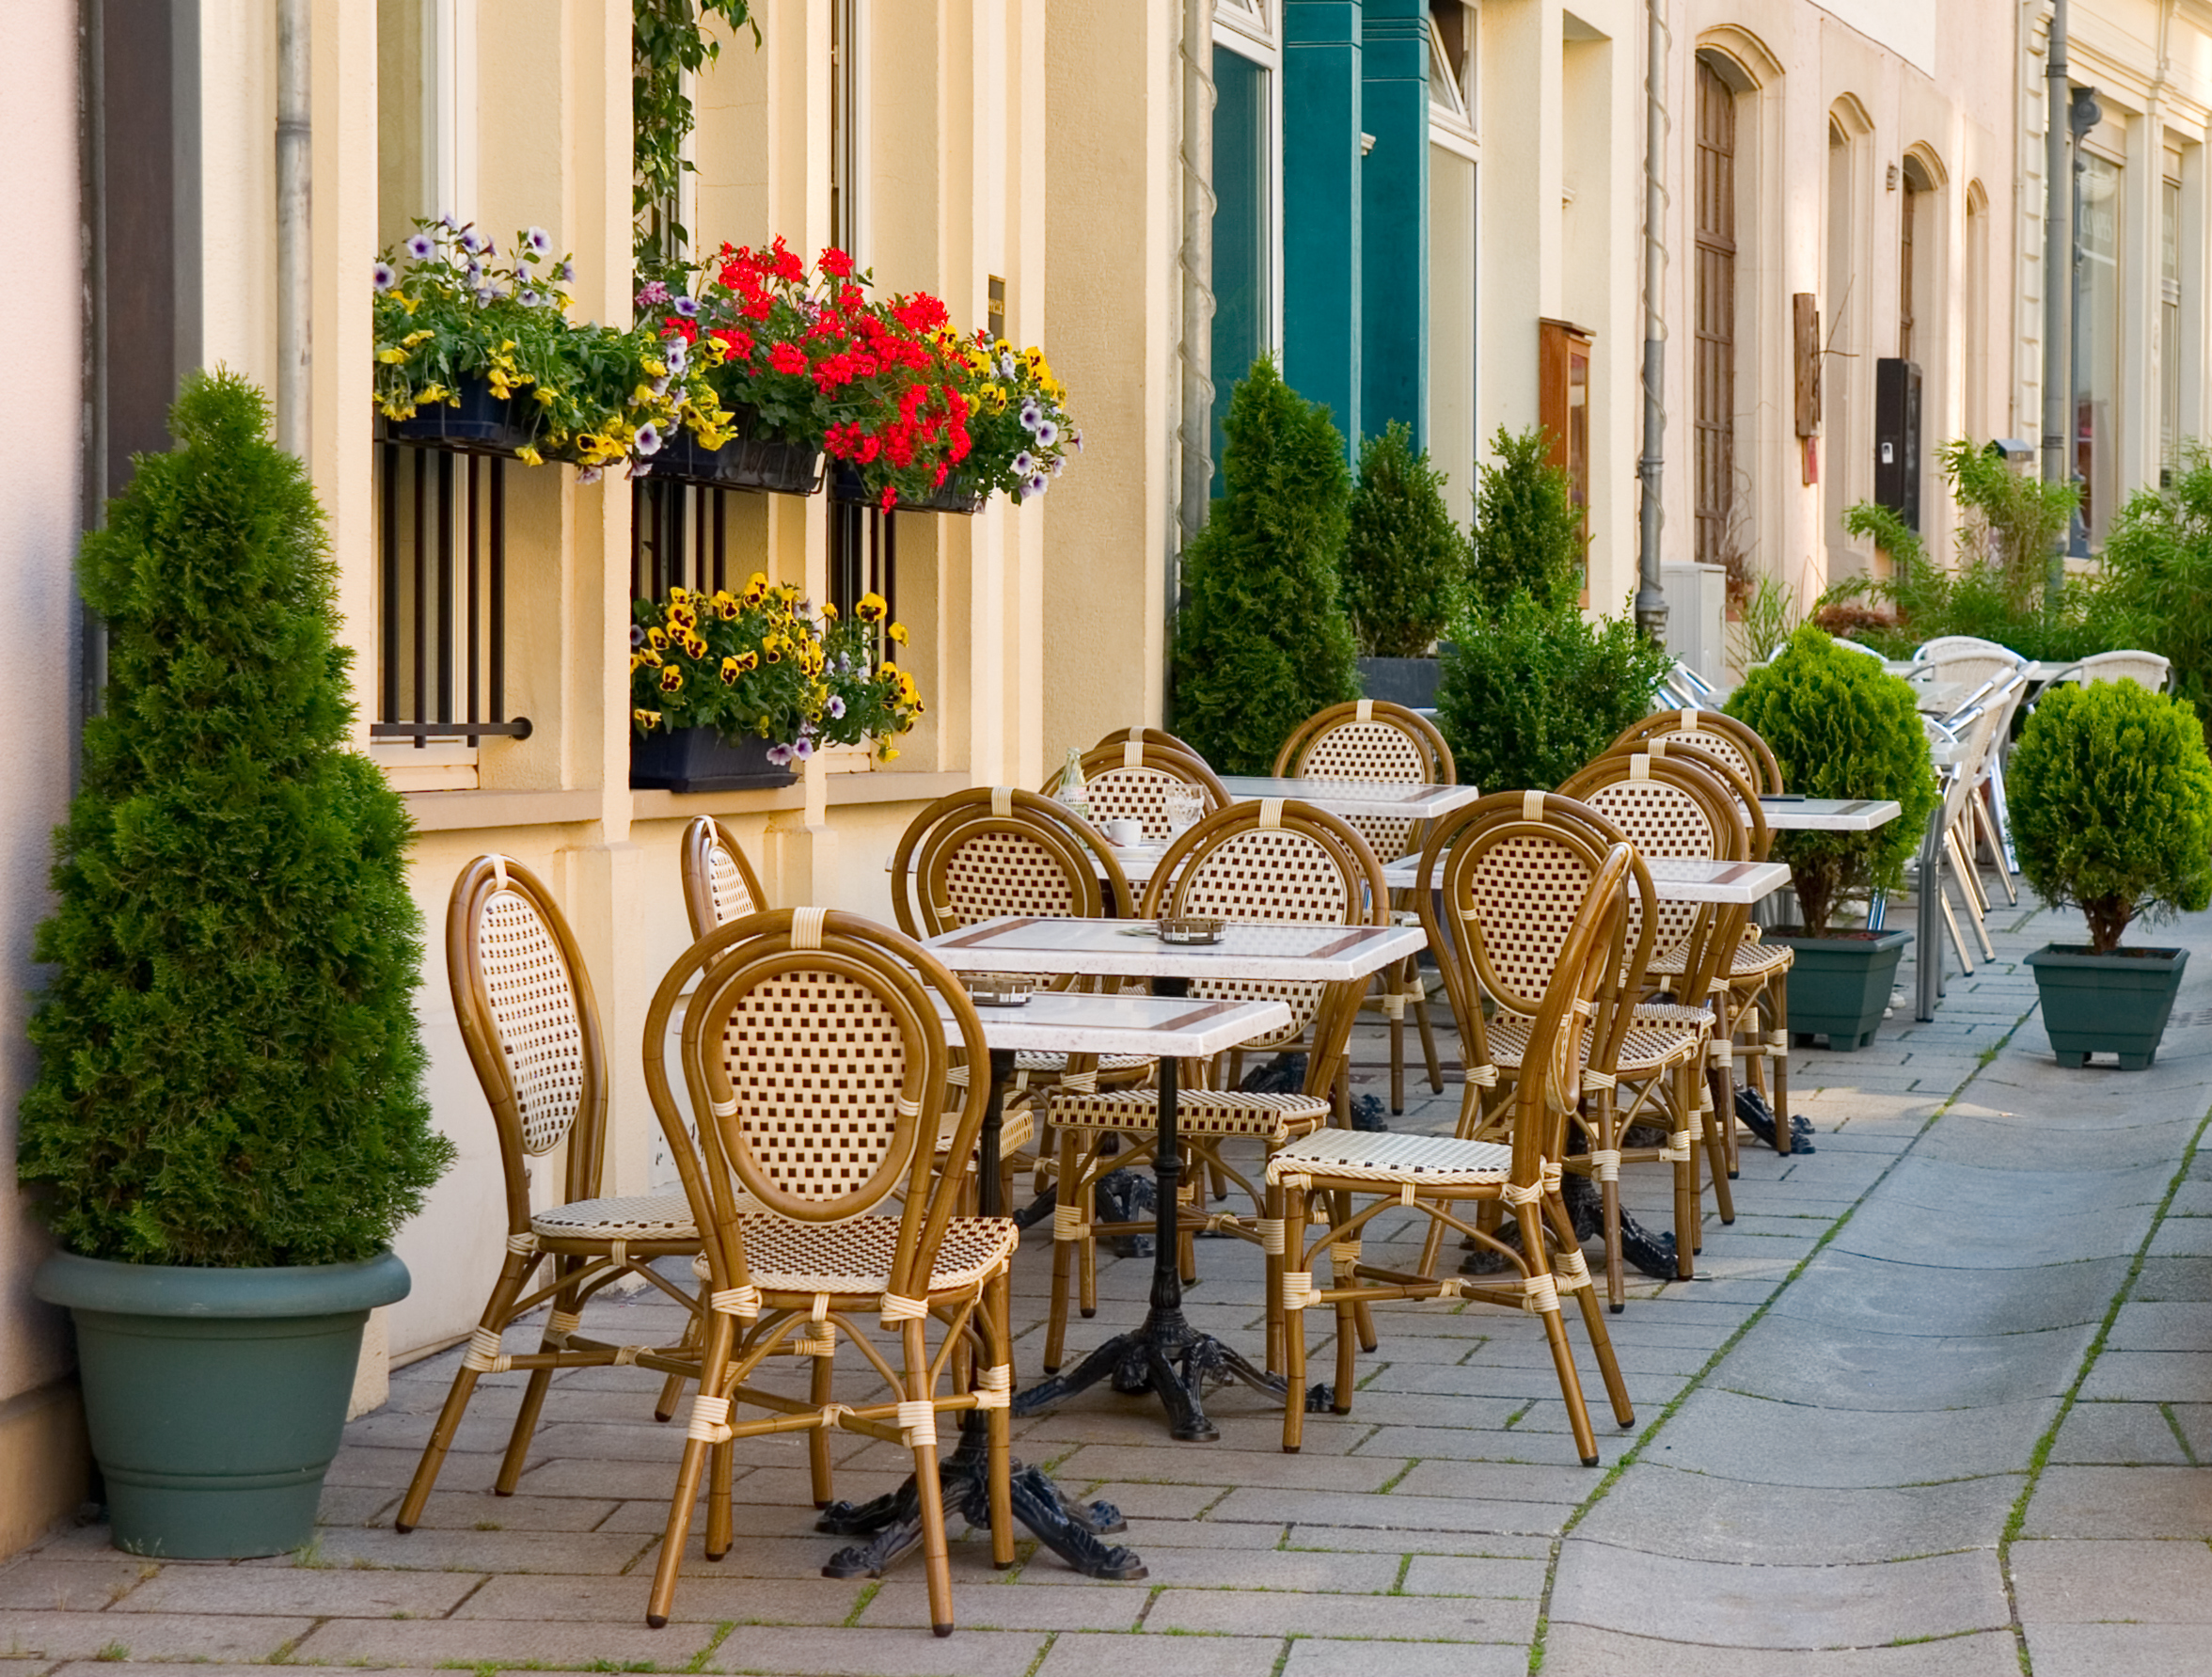 Street cafe in Luxembourg | International Bellhop Travel Magazine